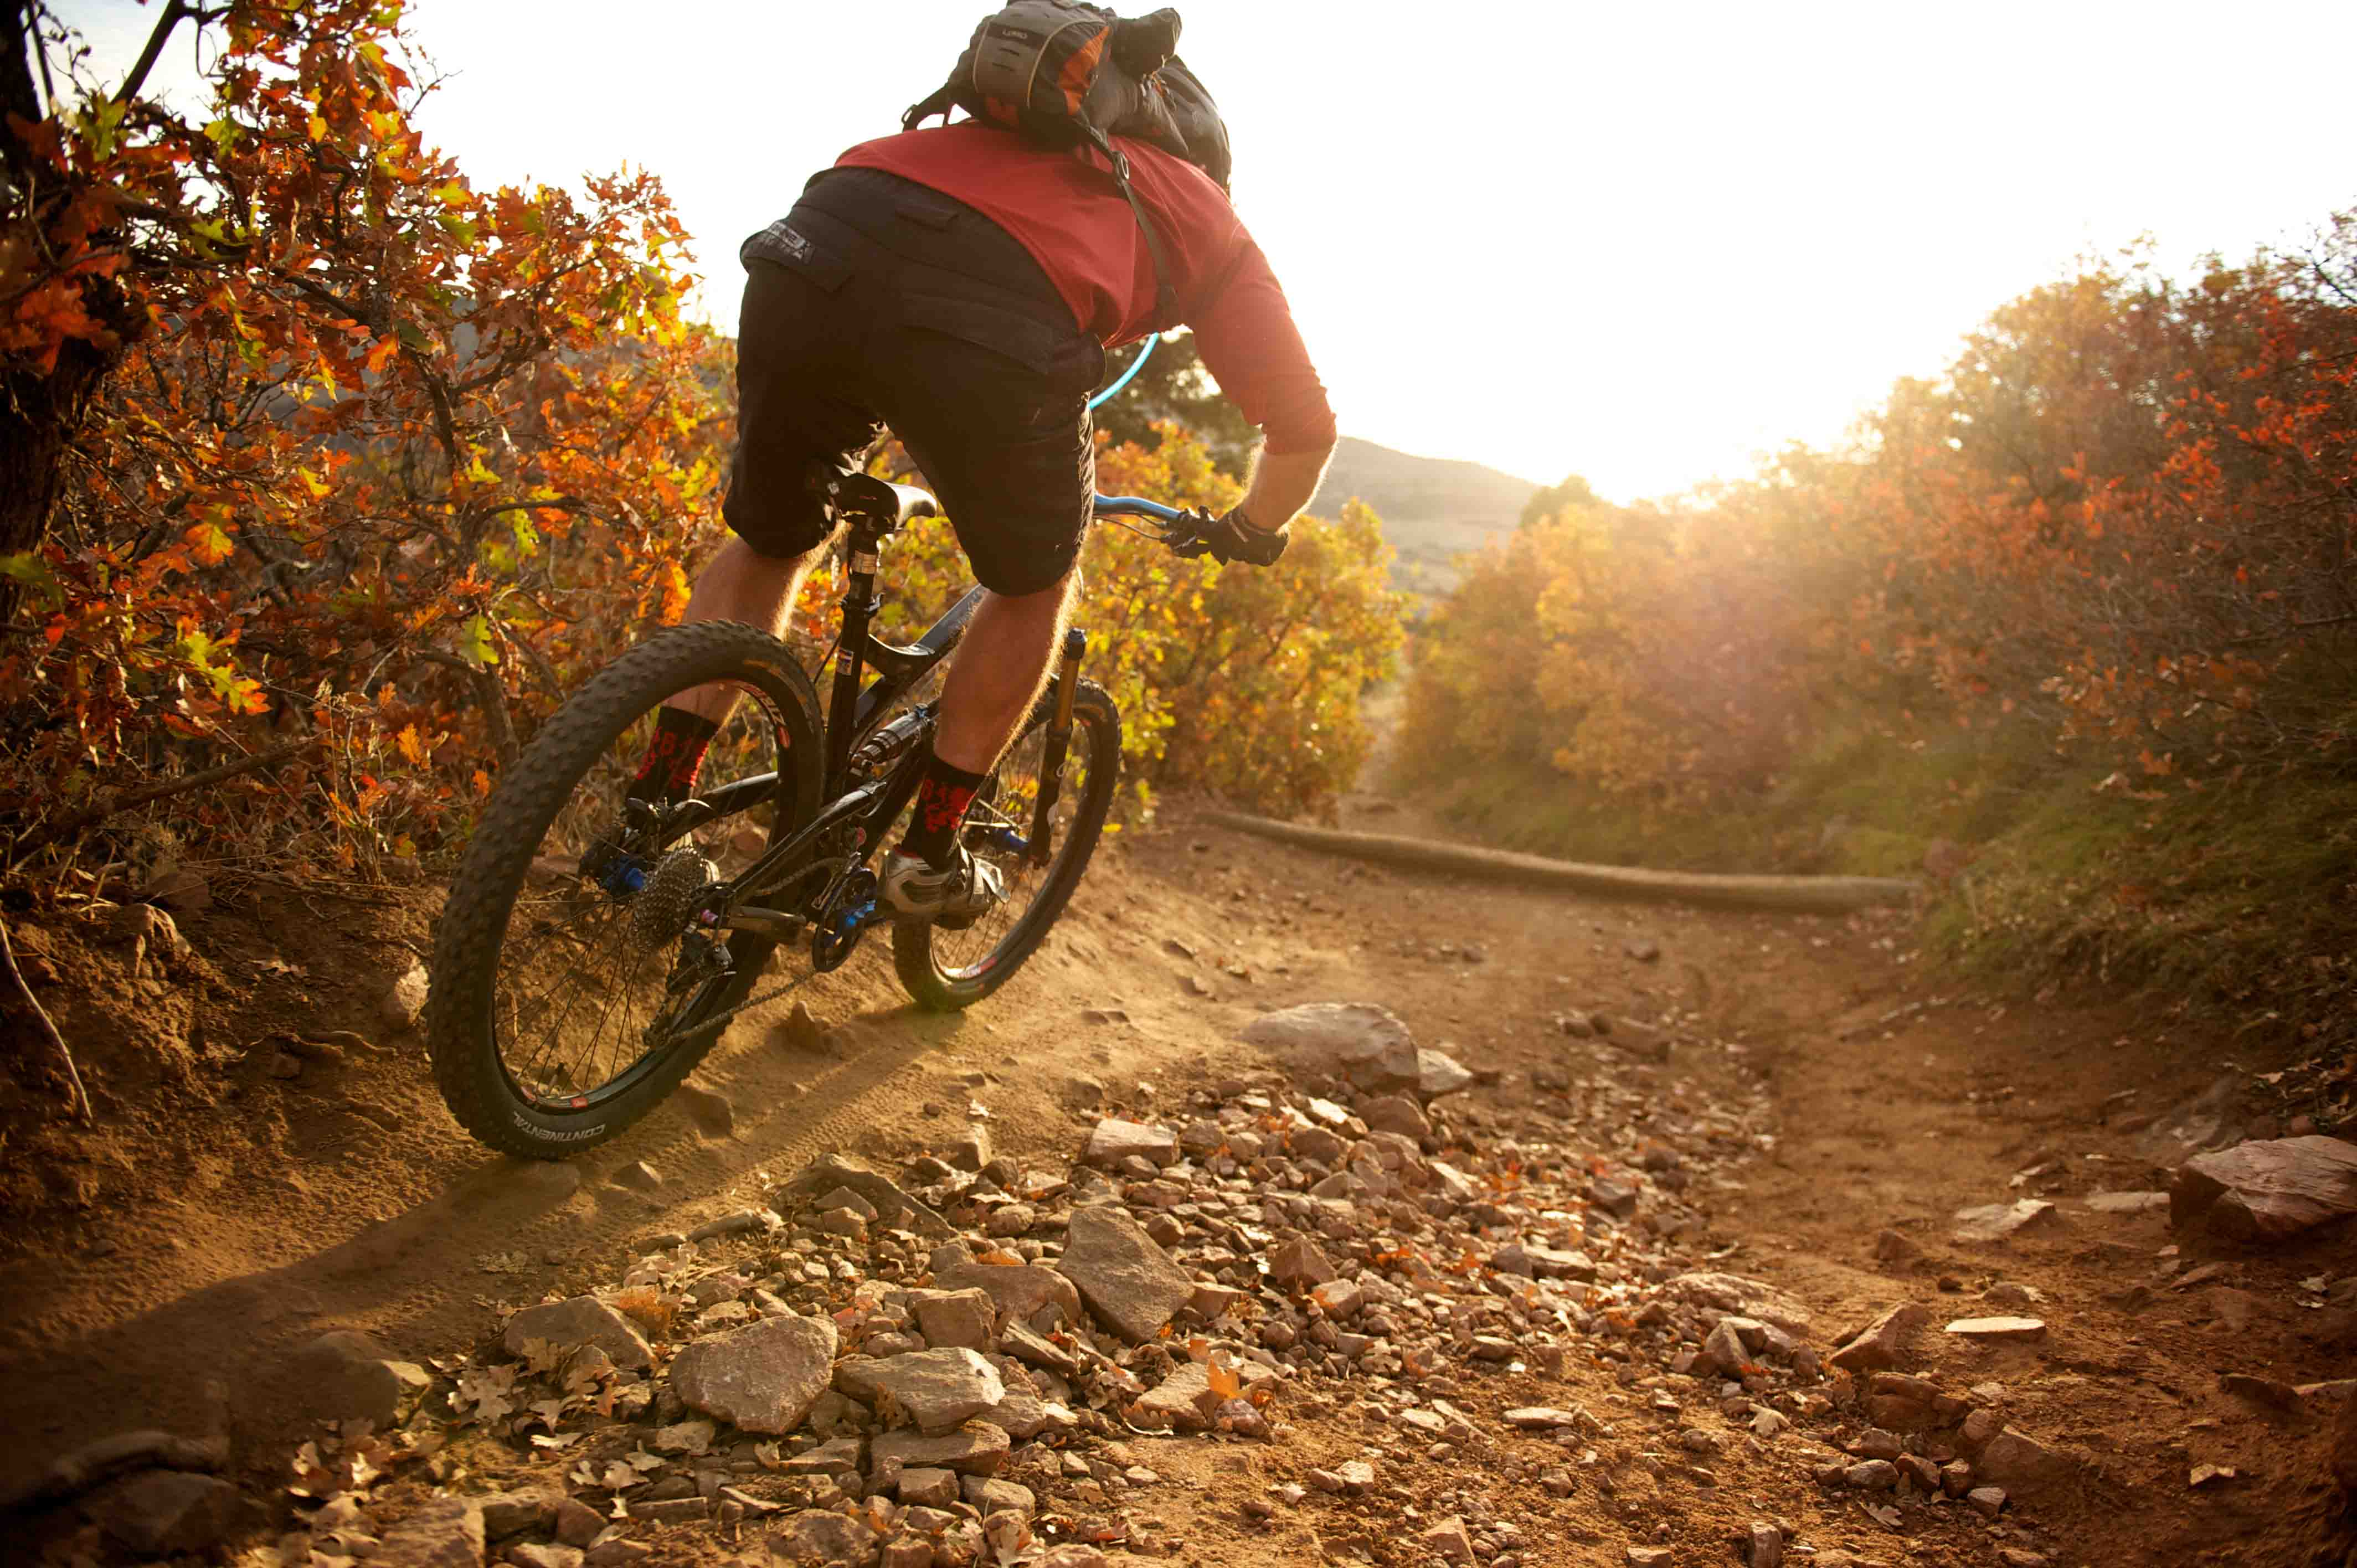 21 OCT 2011:  Mountain biking the trails of Deer Creek in Littleton,CO.